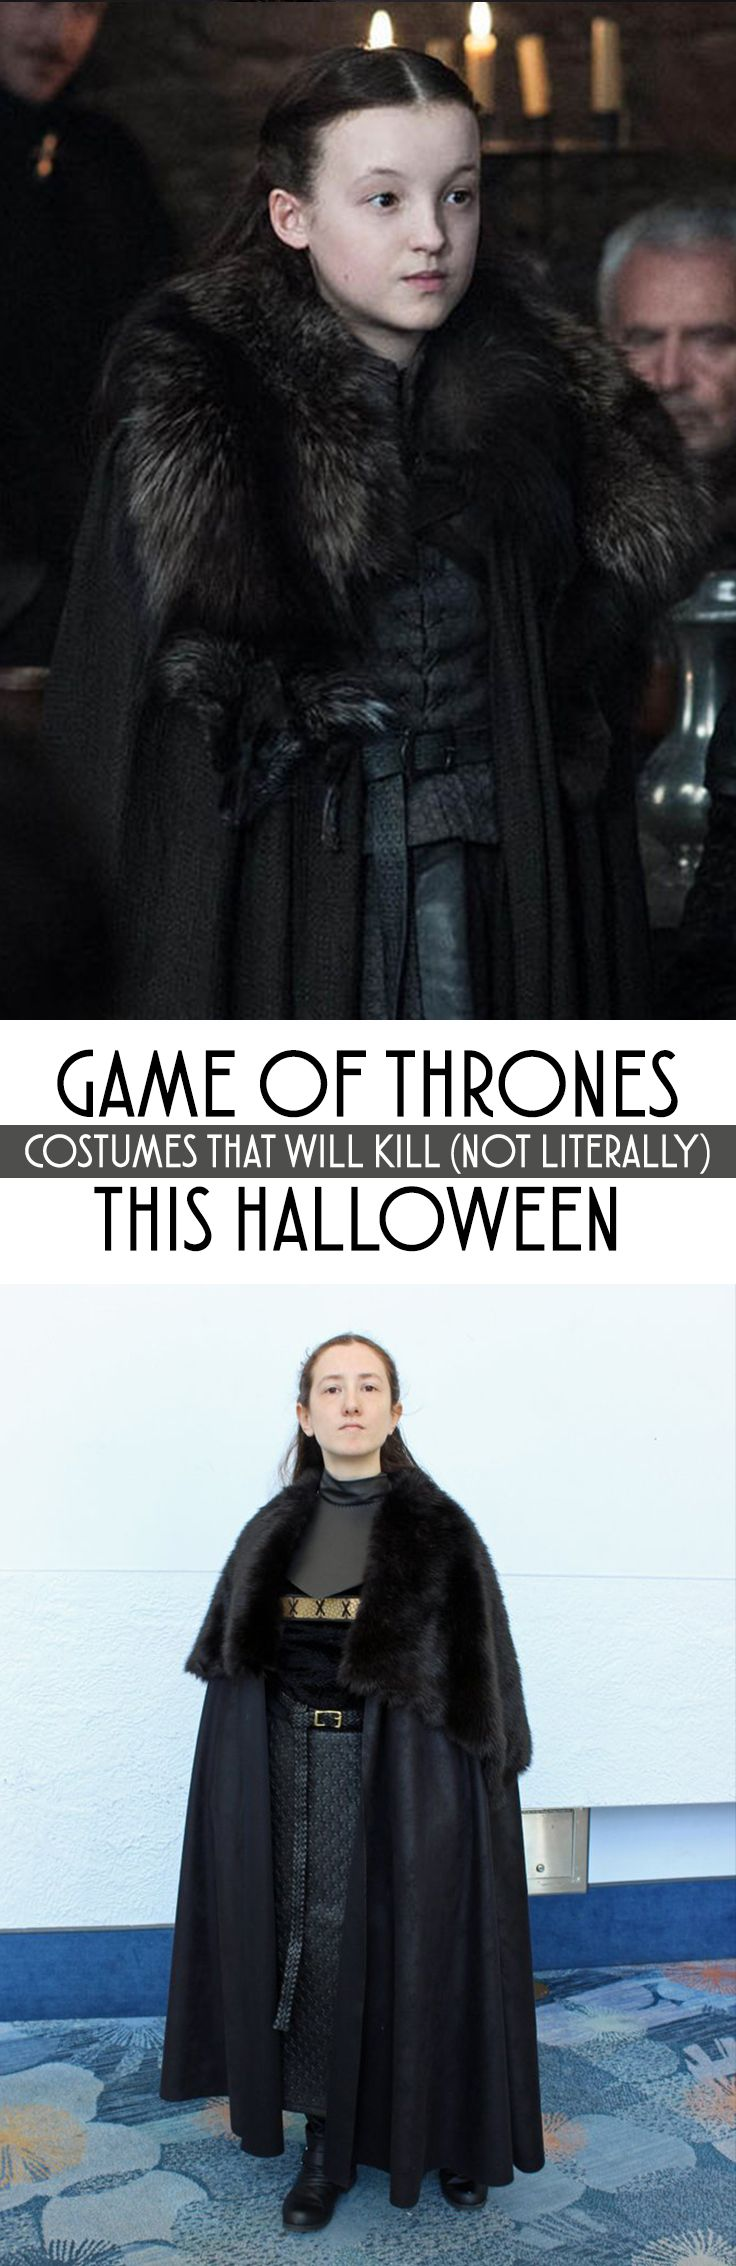 GoT Costumes That will Kill (not literally) This Halloween